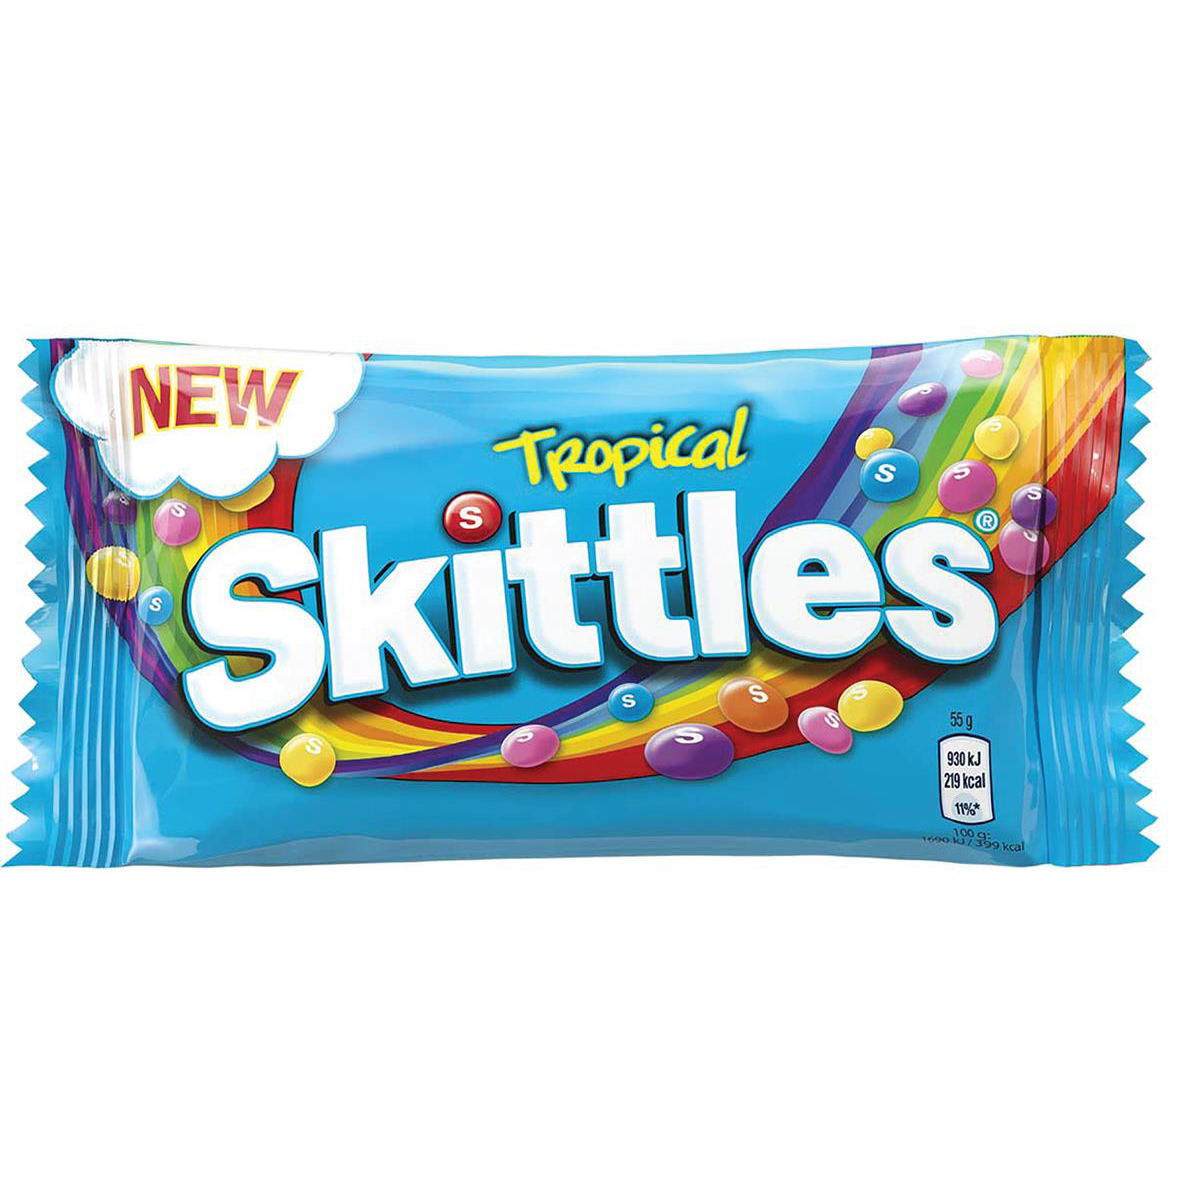 Skittles Tropical Bag 55g Ref 34593 Pack 36